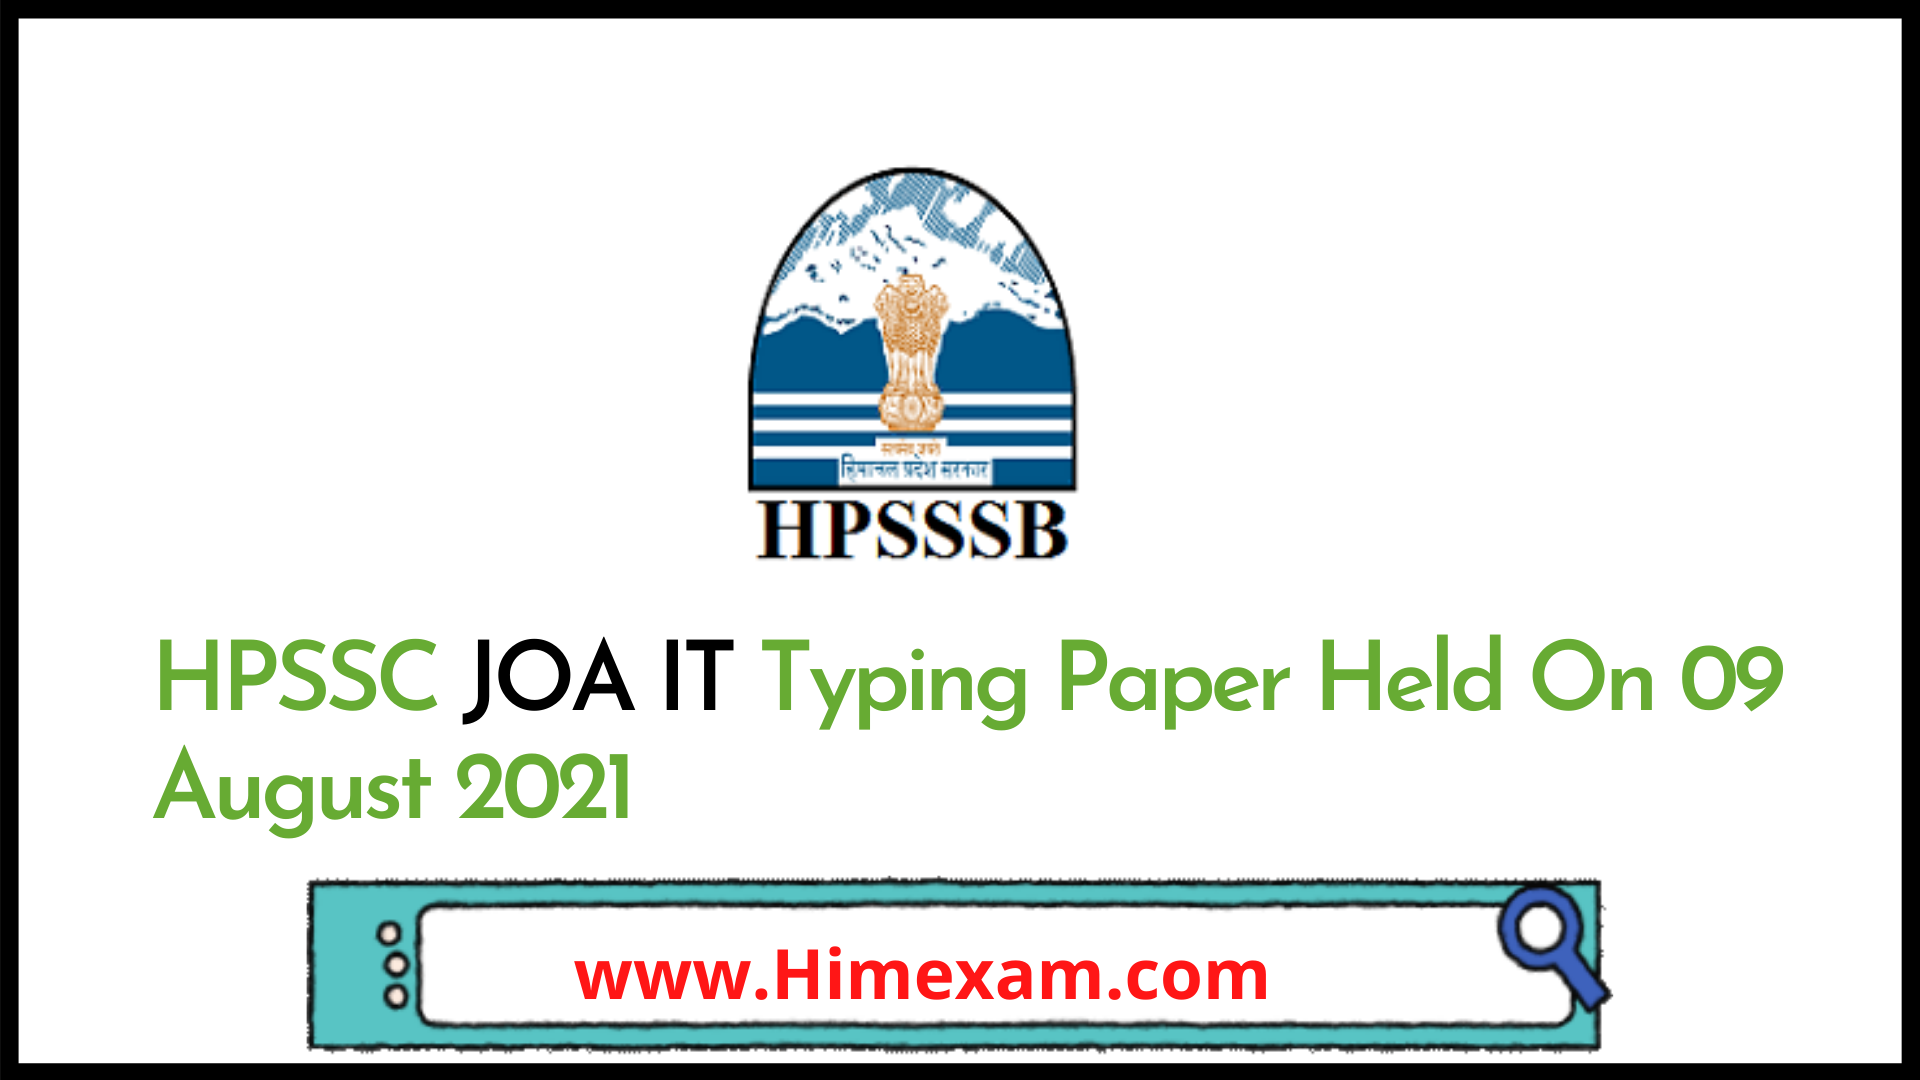 HPSSC JOA IT Typing Paper Held On 09 August 2021